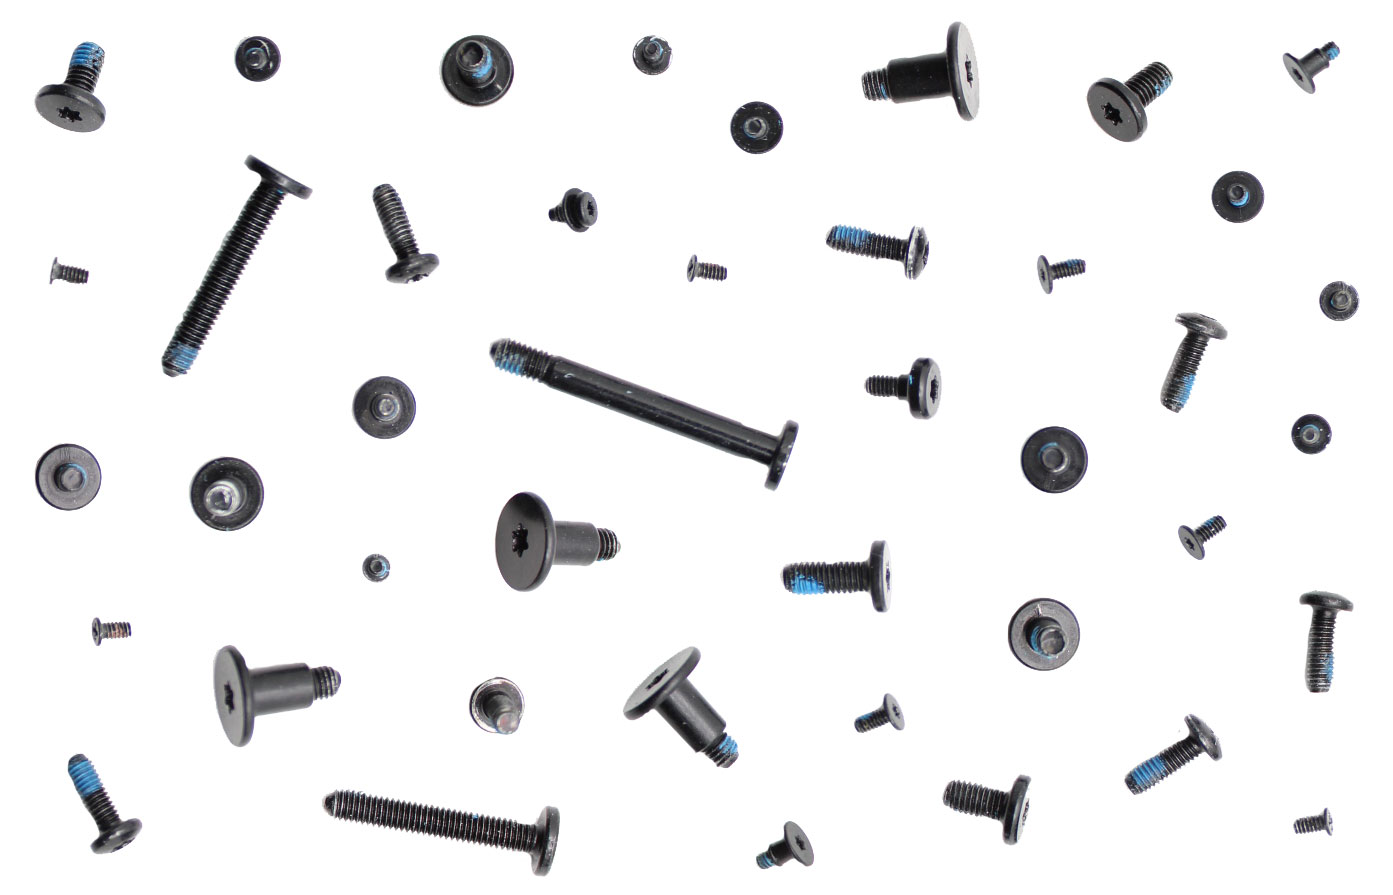 999-0013 - Screws / Screws Full Set/Kit, 40+ Pieces for iMac Retina 4K 21.5-inch 2017. Screw Location(s):